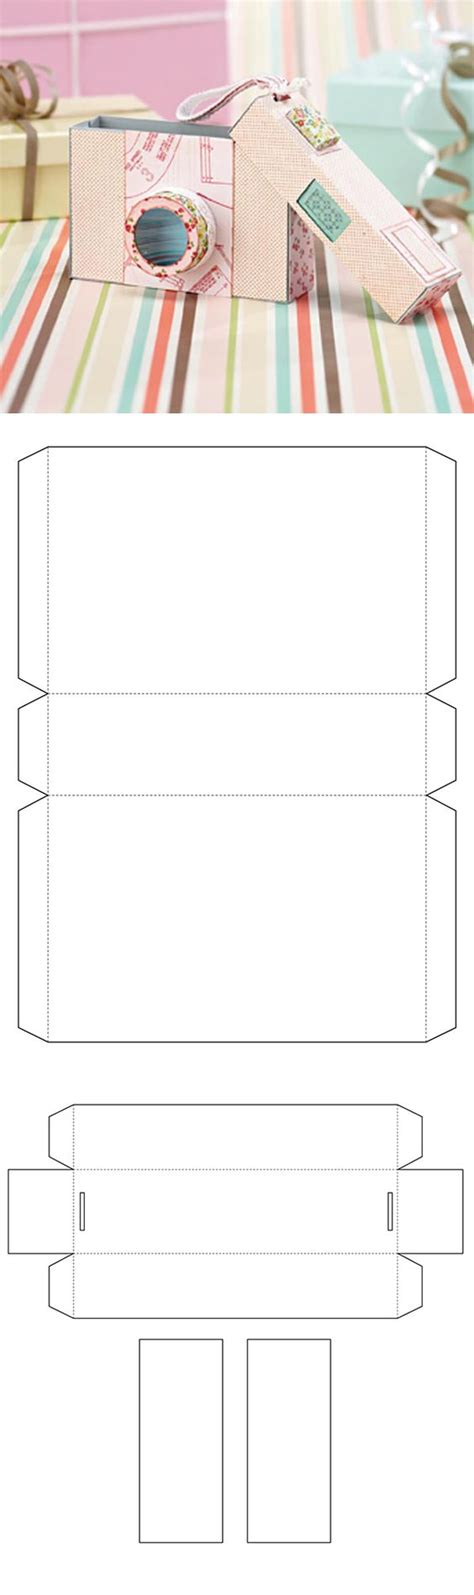 Free Camera Gift Box Template From Papercraft Inspirations Magazine This Would Make The Silhouette Box Template